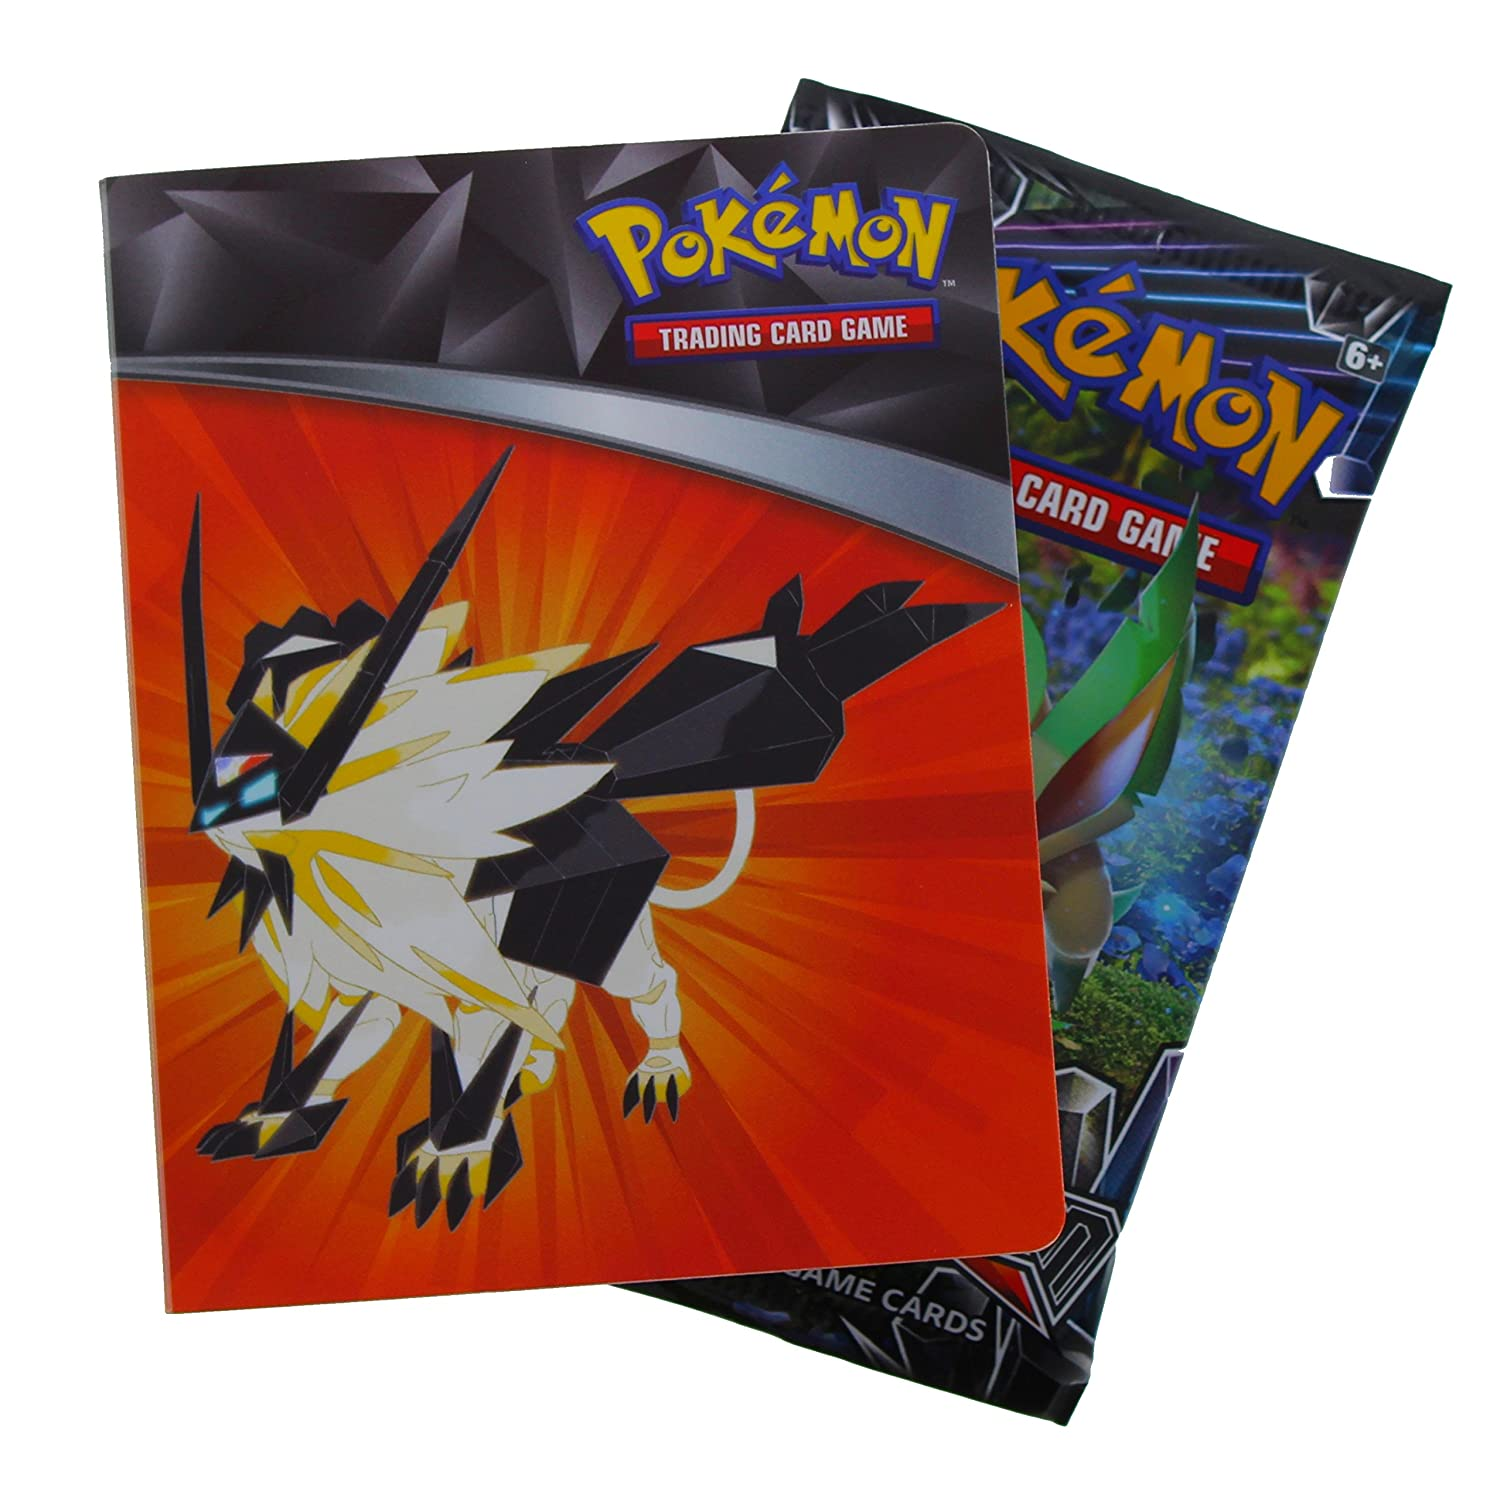 Pokemon Sun Moon Ultra Prism Mini Binder + Card Pack Excell Marketing L.C. 820650803581